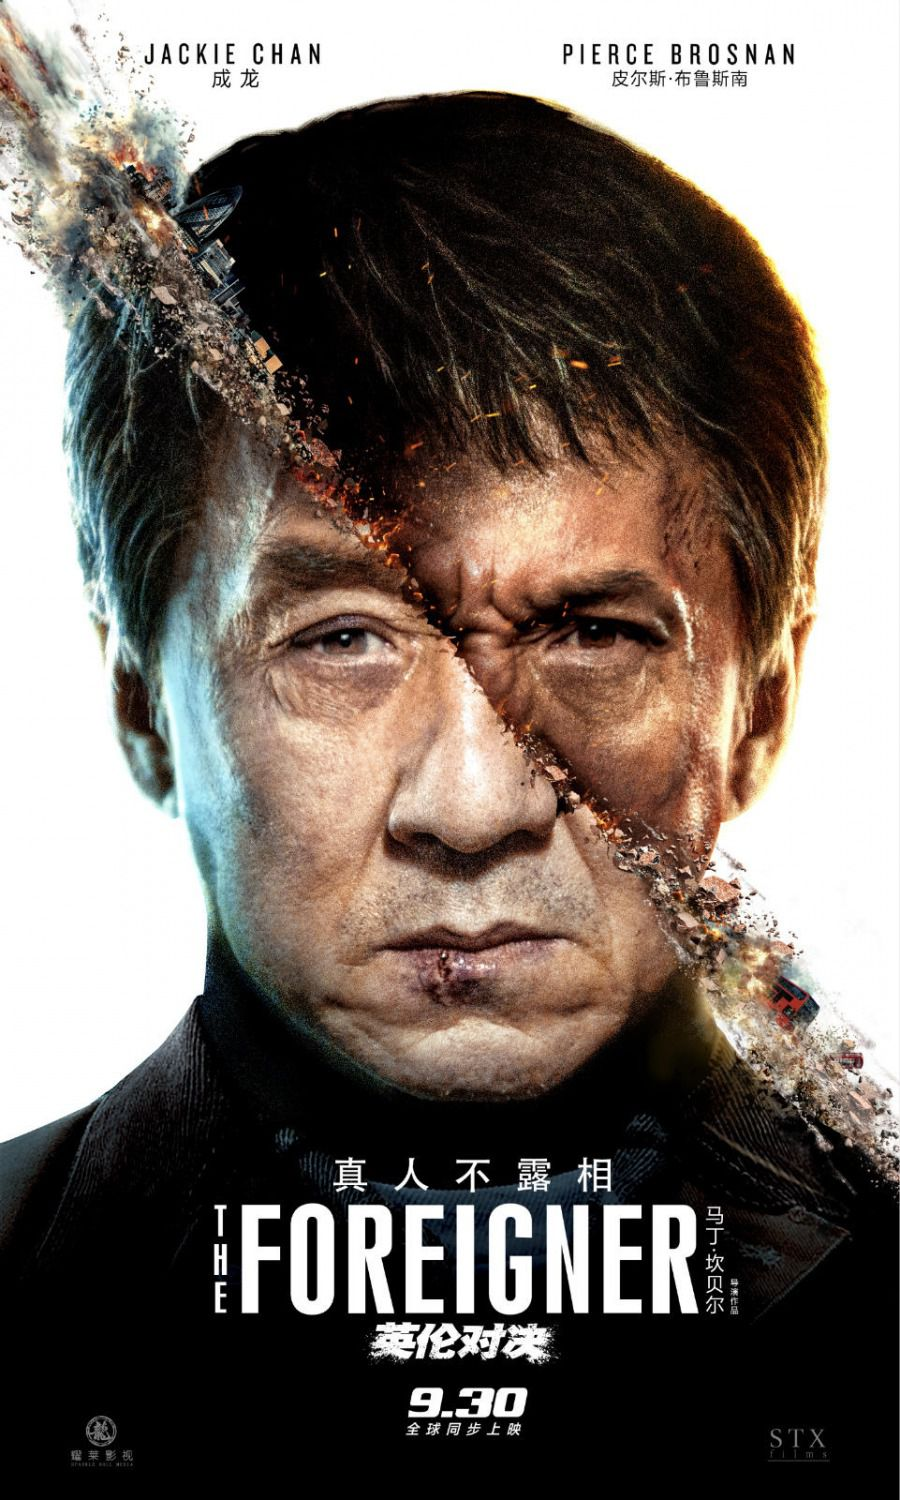 The Foreigner - lo Straniero - El Implacable - implacabile - Jackie Chan